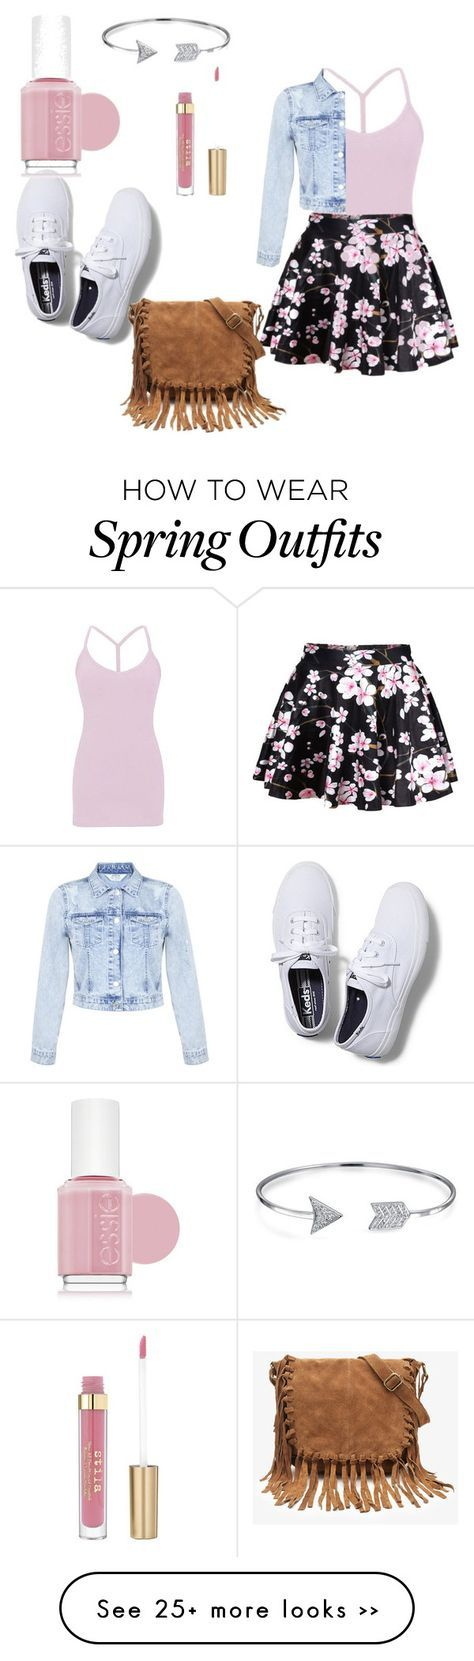 """middle school outfit"" by jadawashington-jw on Polyvore - Come see where everyone shops for the best deals and prices on the coolest looks. Currently offering FREE SHIPPING WORLDWIDE!"